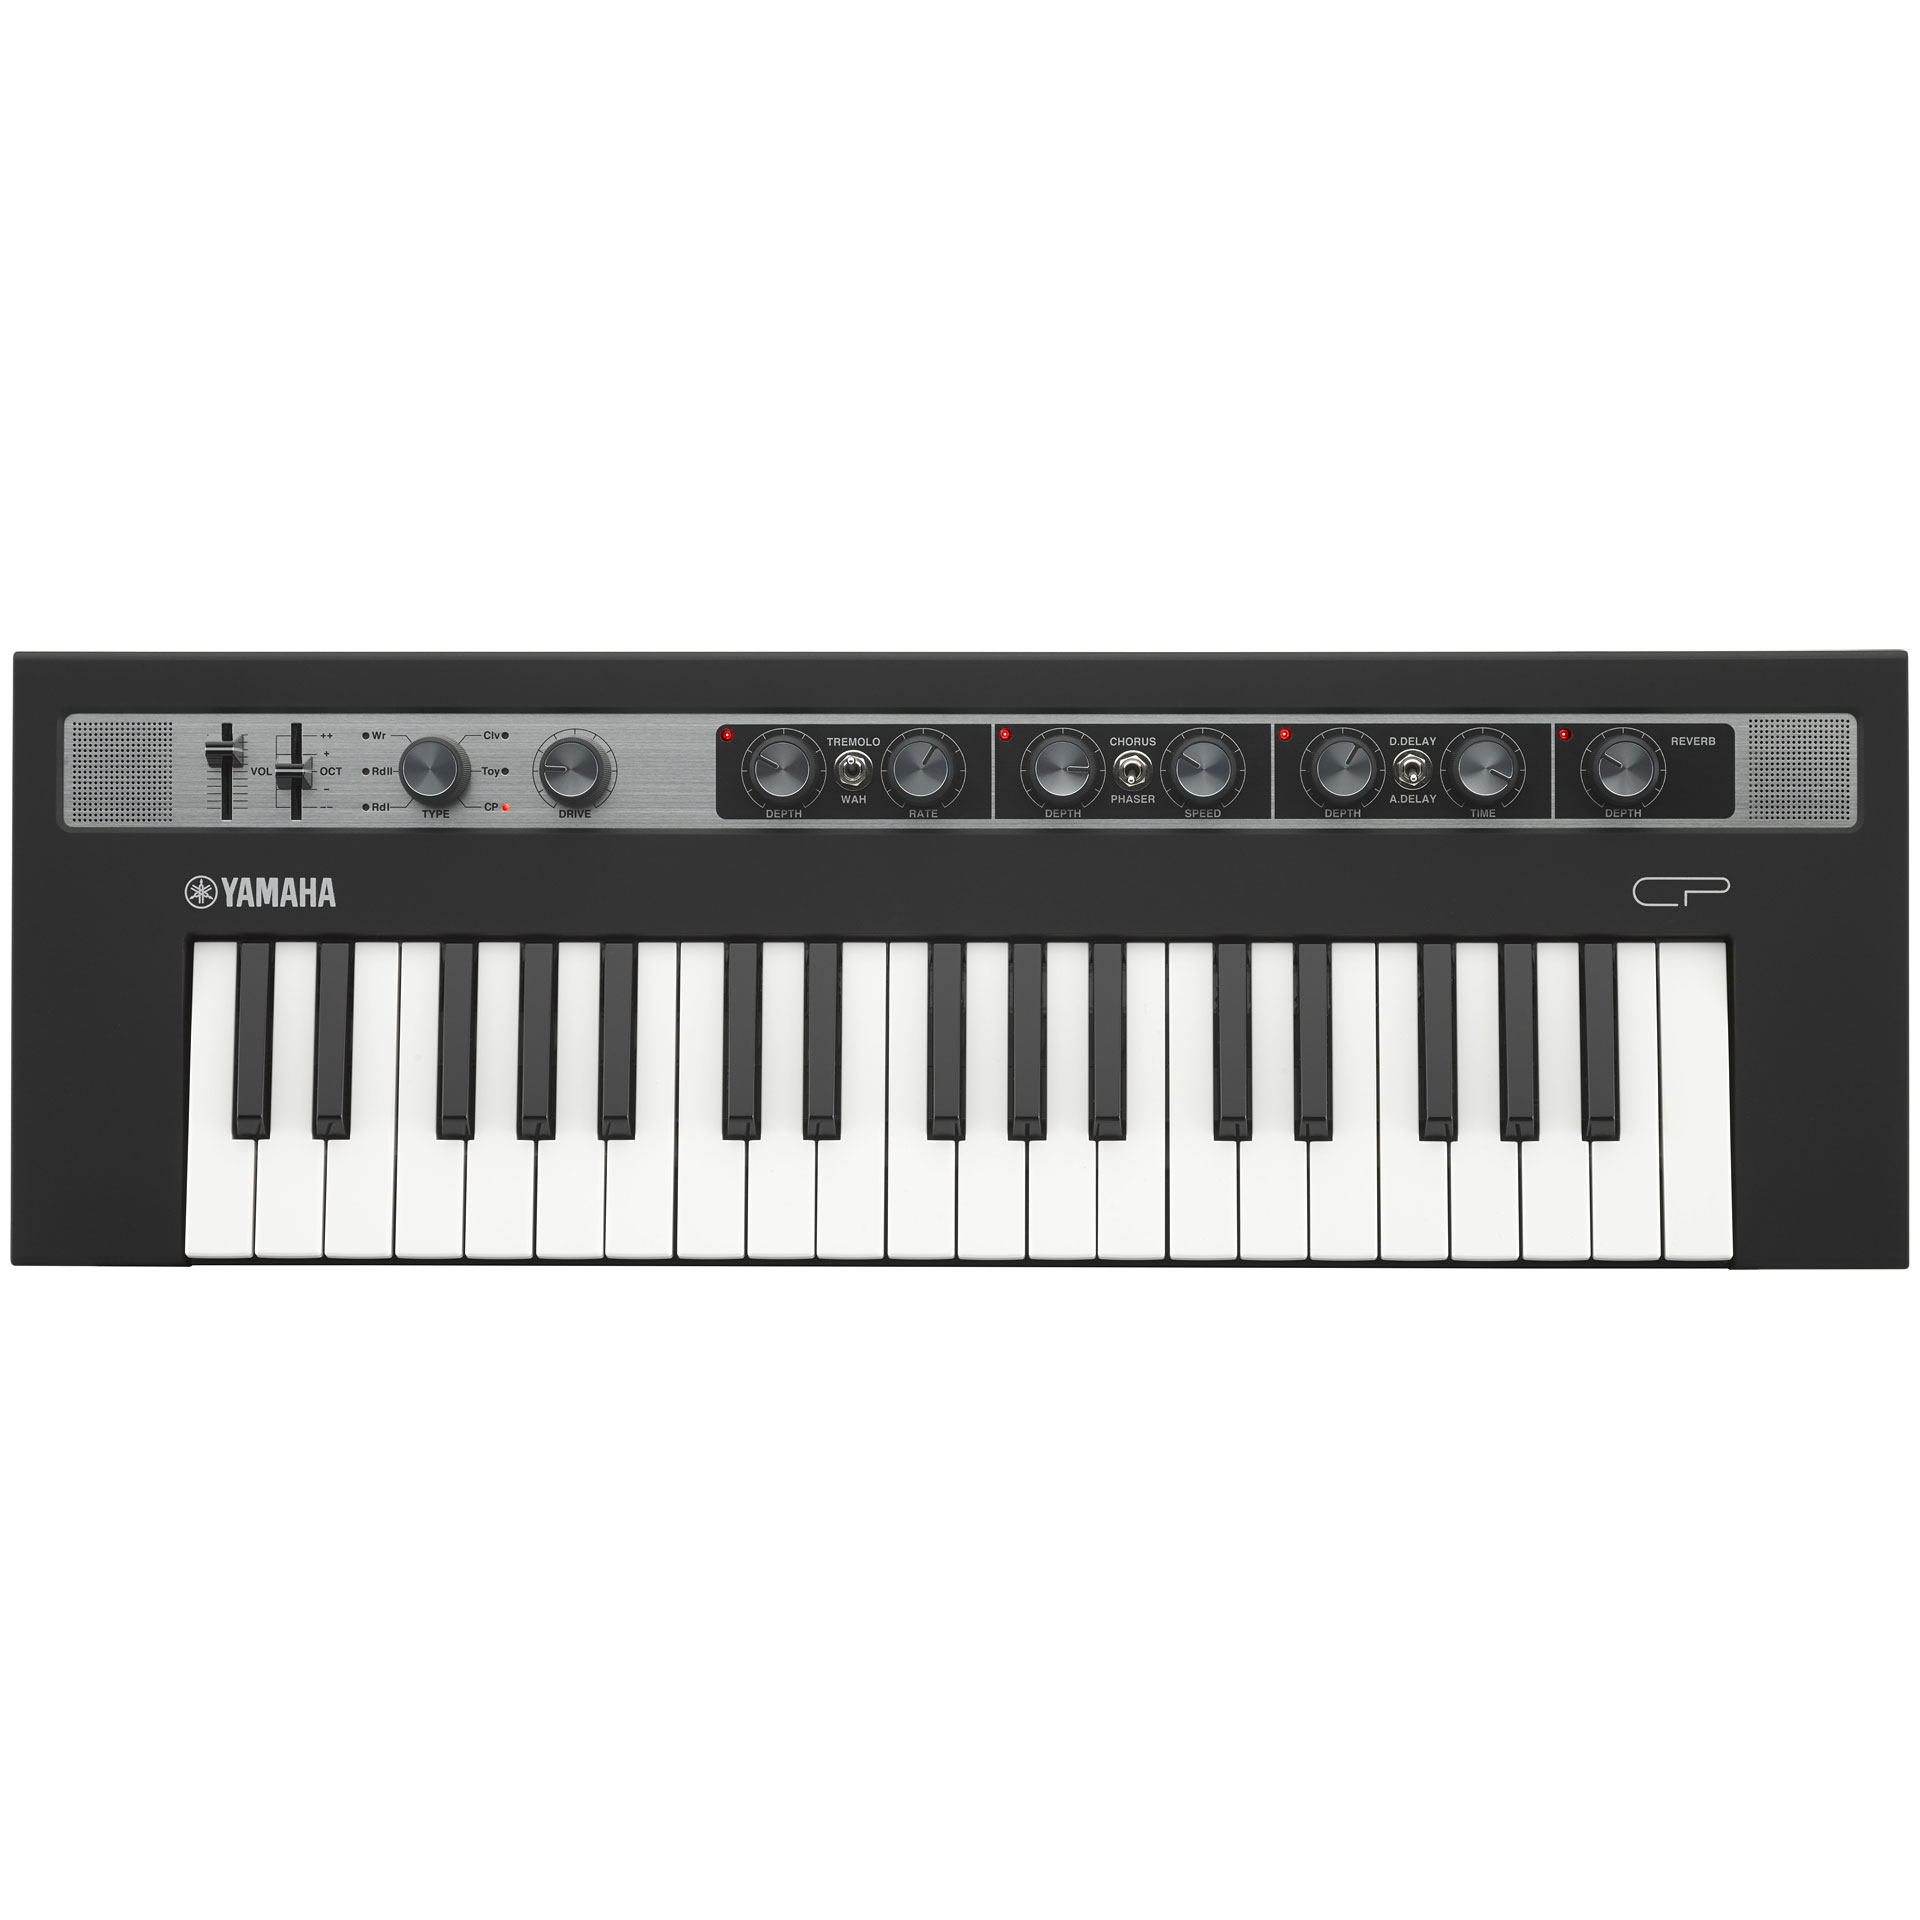 Yamaha Cp Stage Piano Sounds